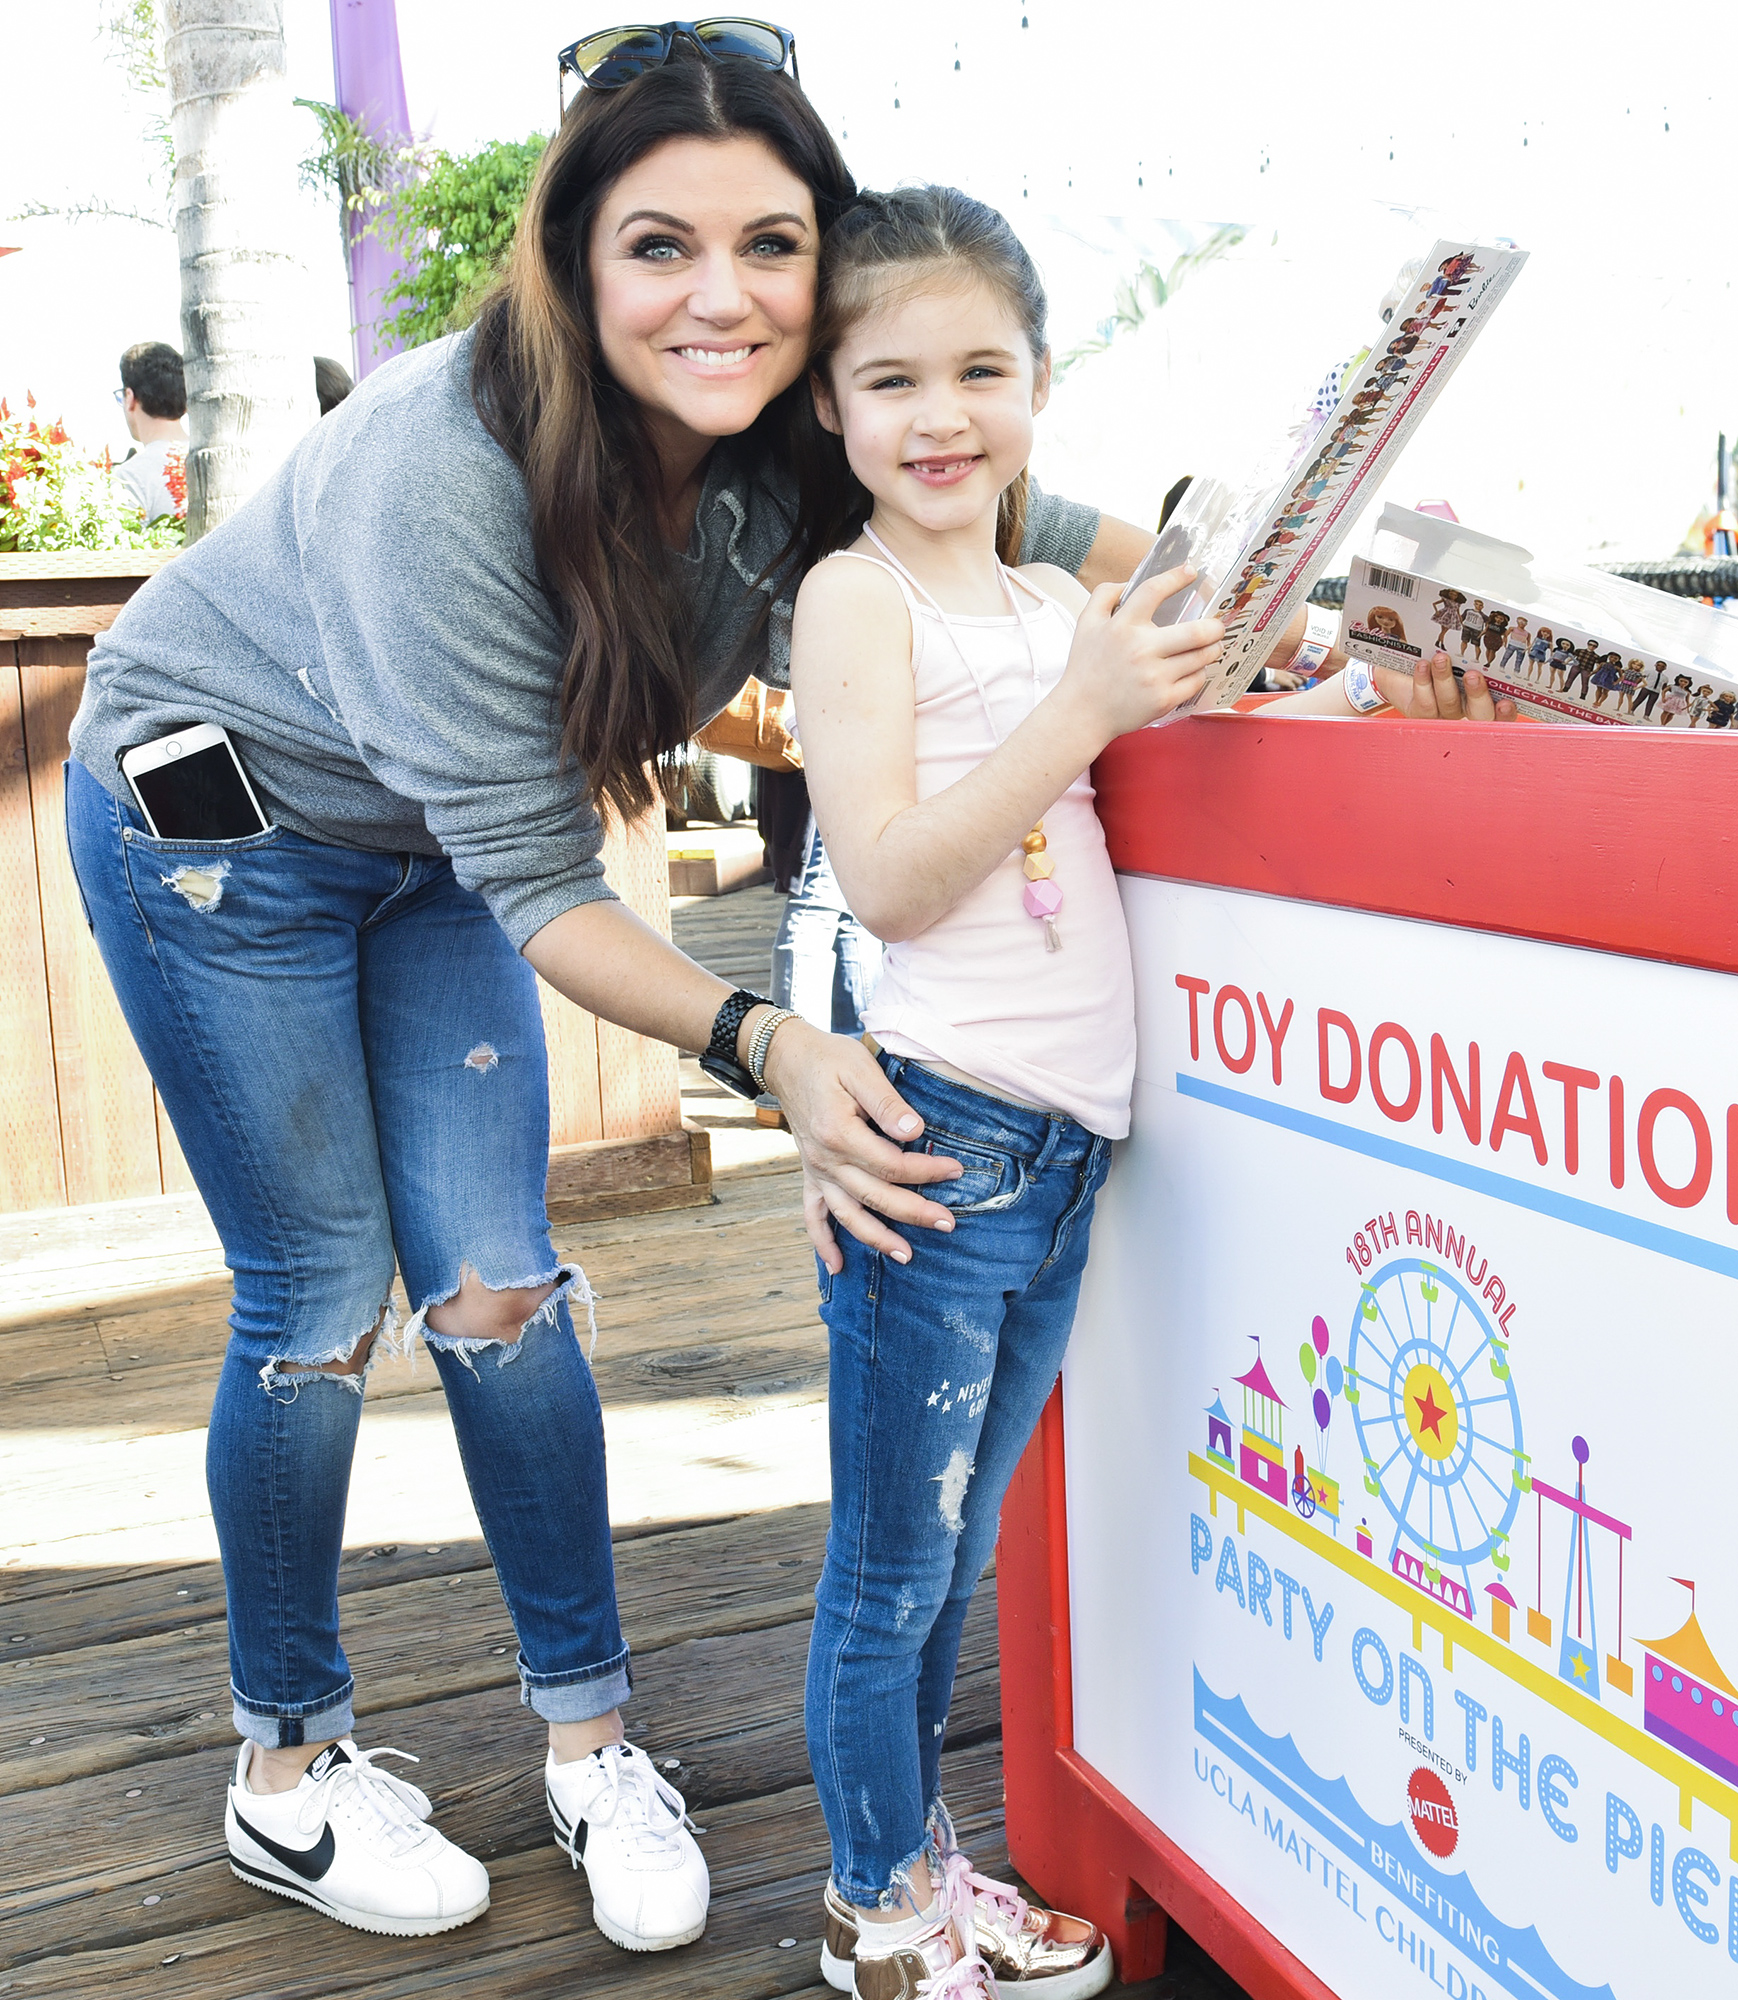 18th Annual Mattel Party On The Pier